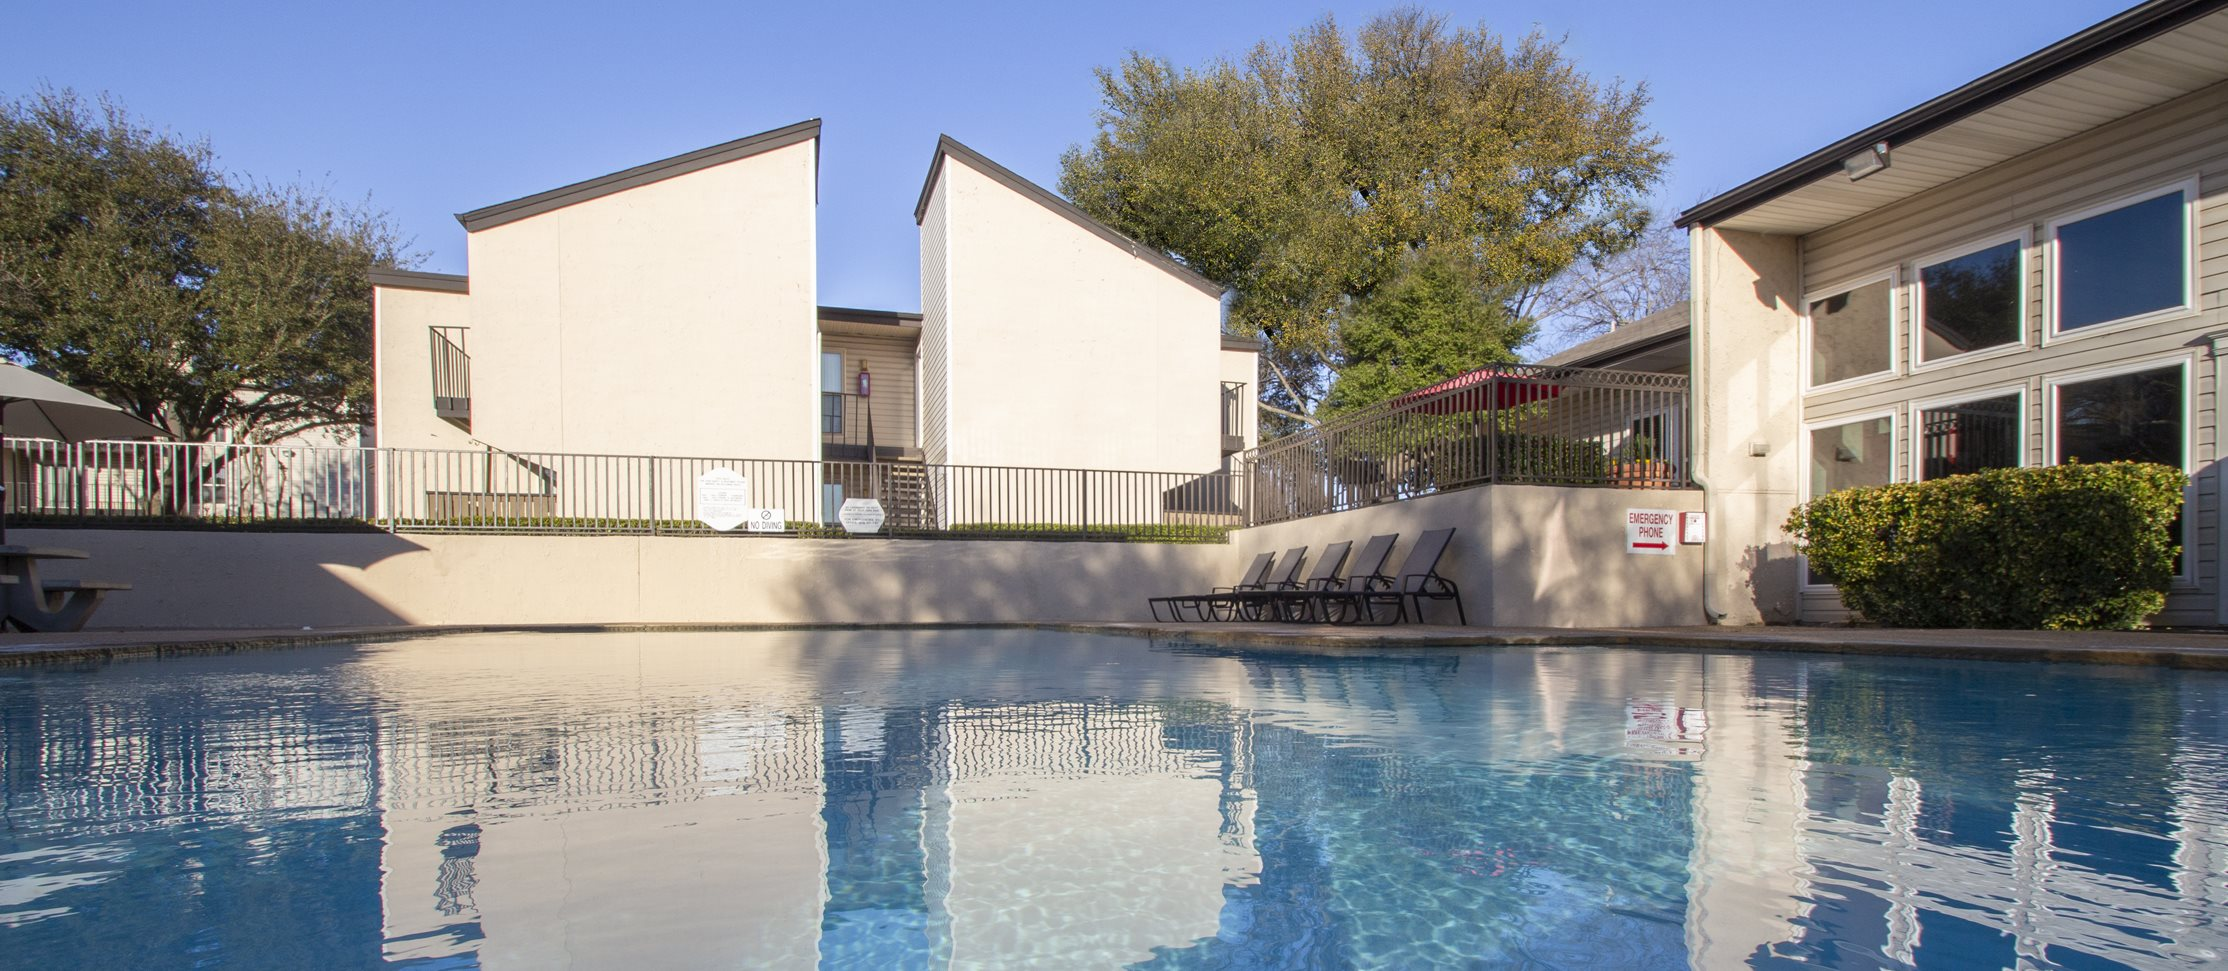 This is a photo of the pool area at The Biltmore Apartments in Dallas, TX